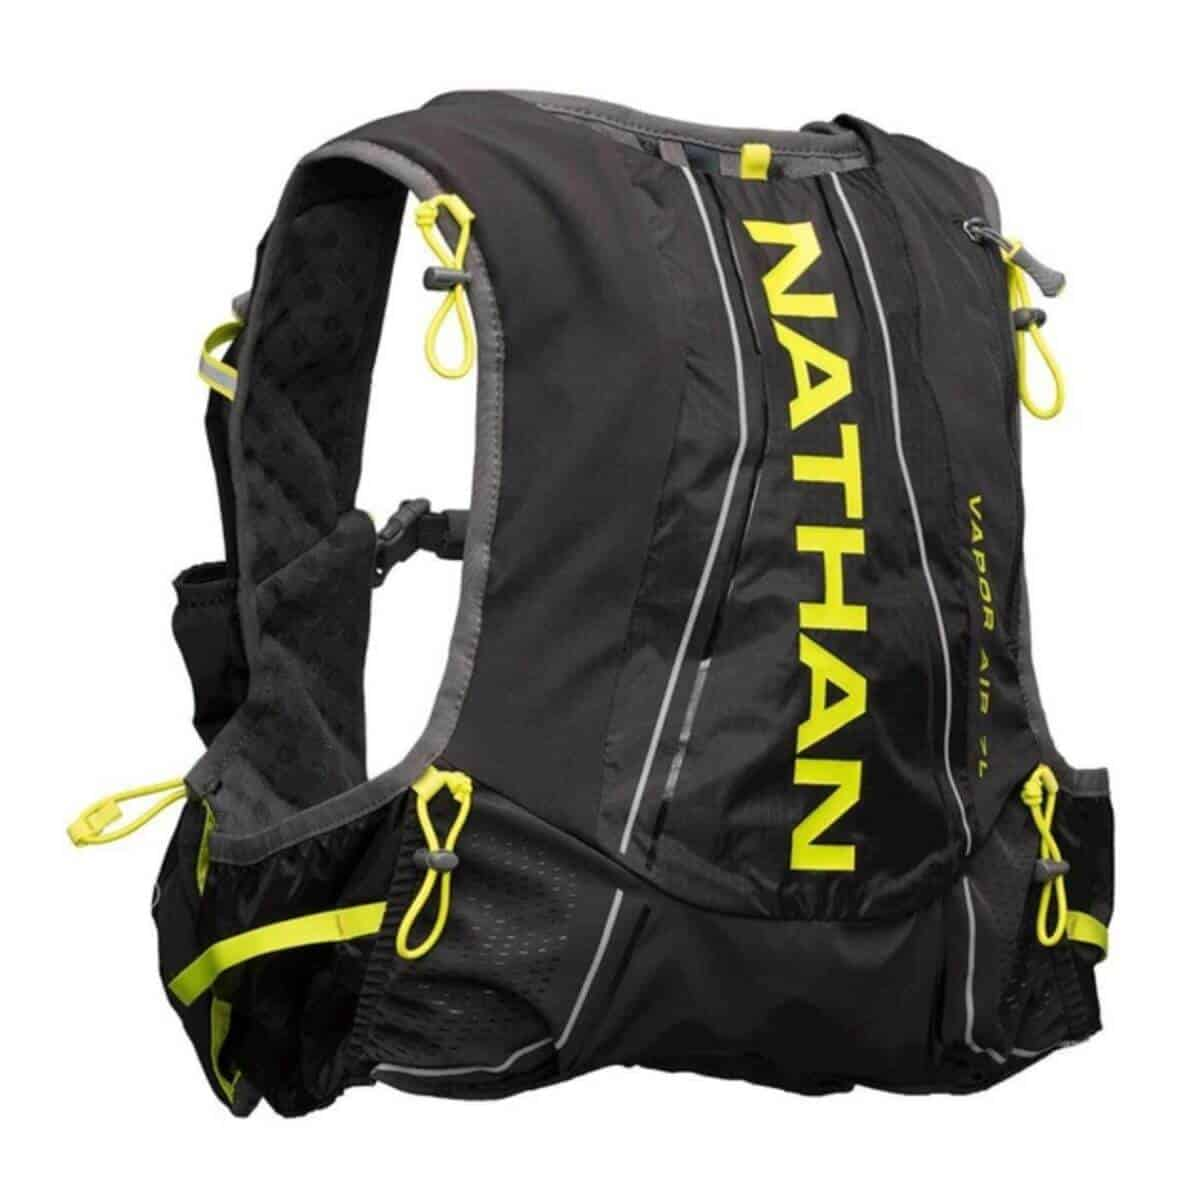 Black and yellow hydration pack.